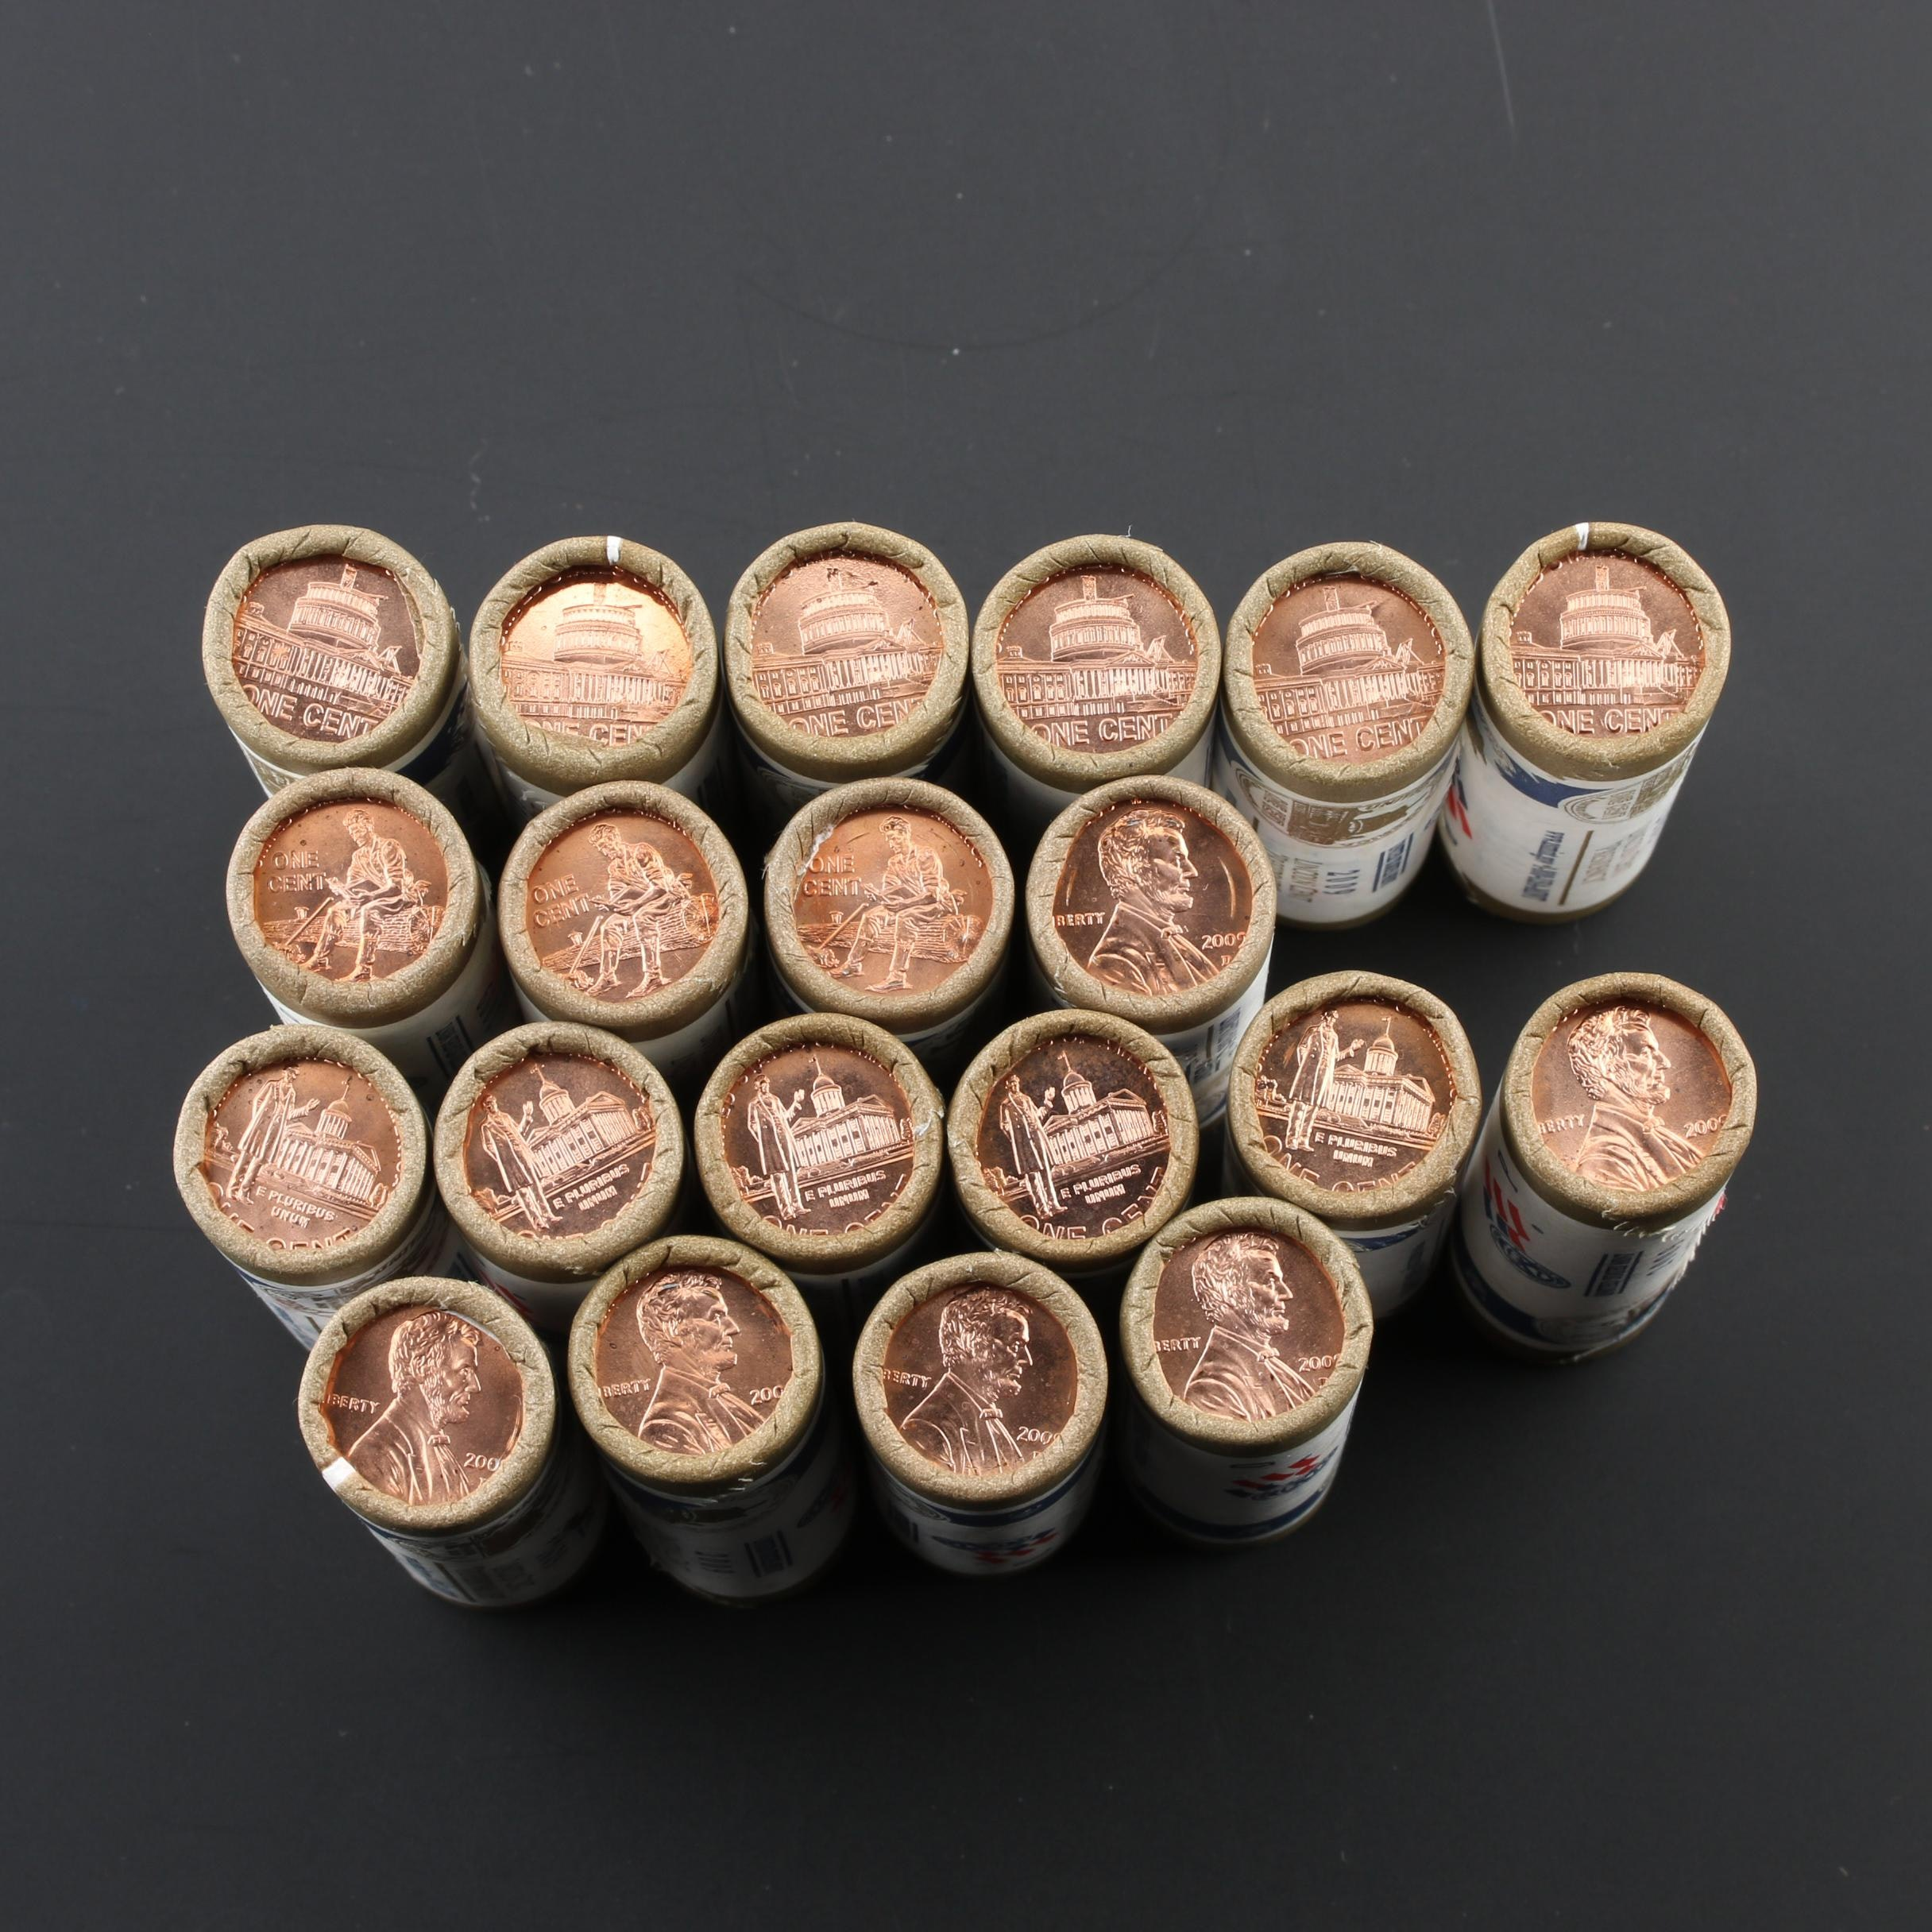 Group of Twenty Rolls of 2009 Lincoln Bicentennial Cents